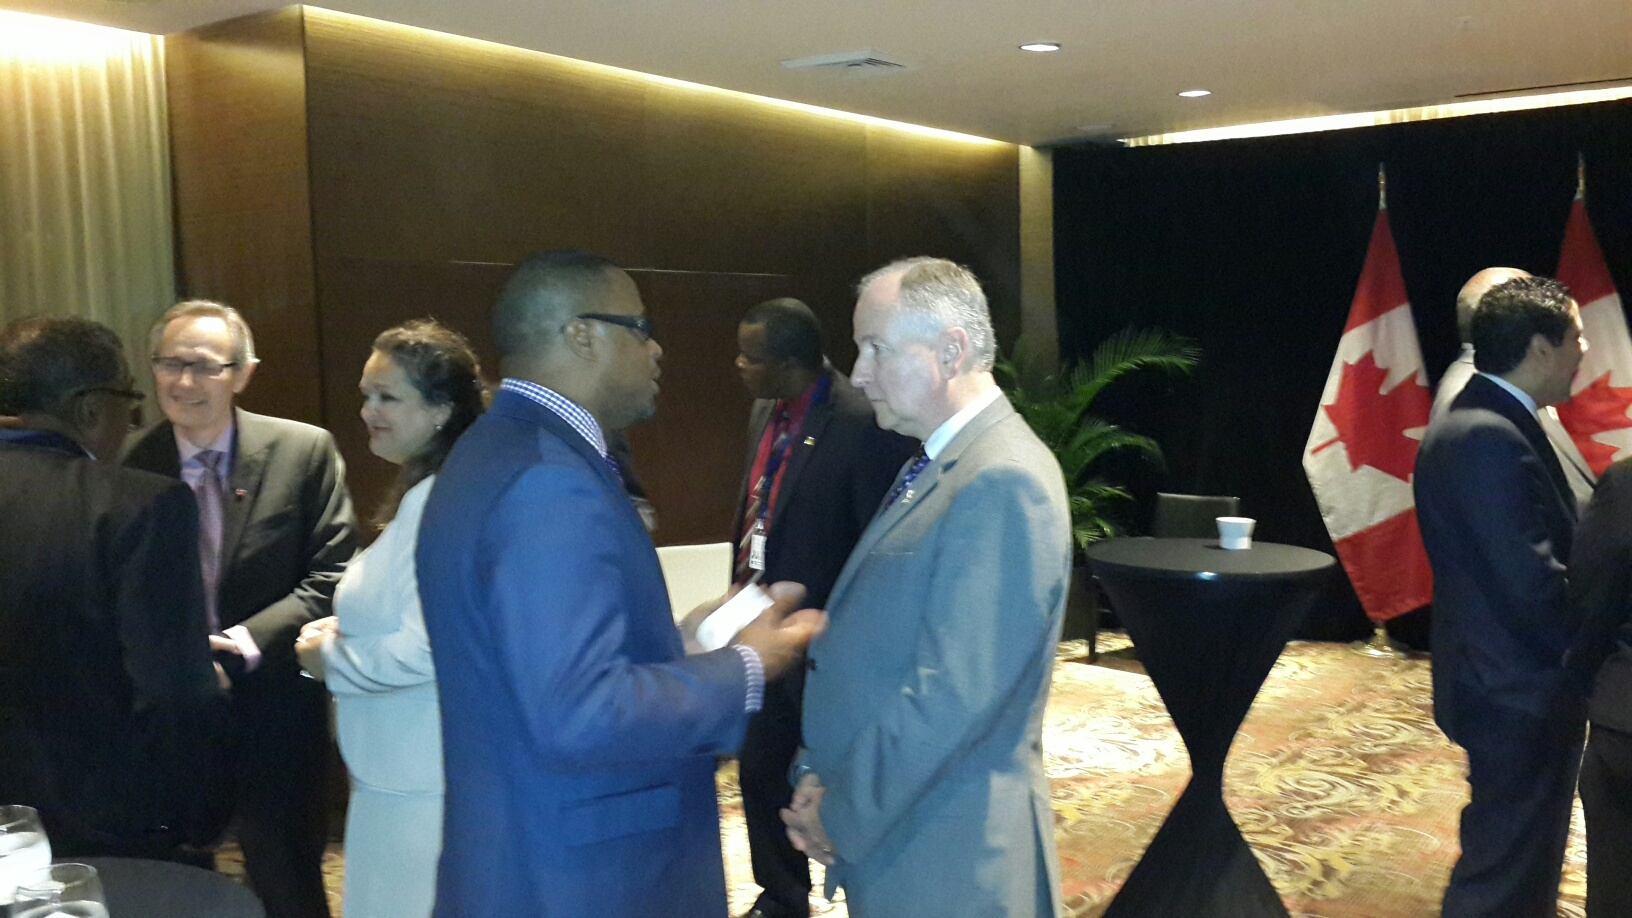 St. Kitts and Nevis Foreign Affairs Minister and Deputy Premier of Nevis Hon. Mark Brantley (center left) with Canadian Foreign Affairs Minister Rob Nicholson (center right) on April 10, 2015, at a cocktail hosted by the Canadian Official for Caribbean Community Foreign Affairs Ministers attending the Summit of the Americas in Panama